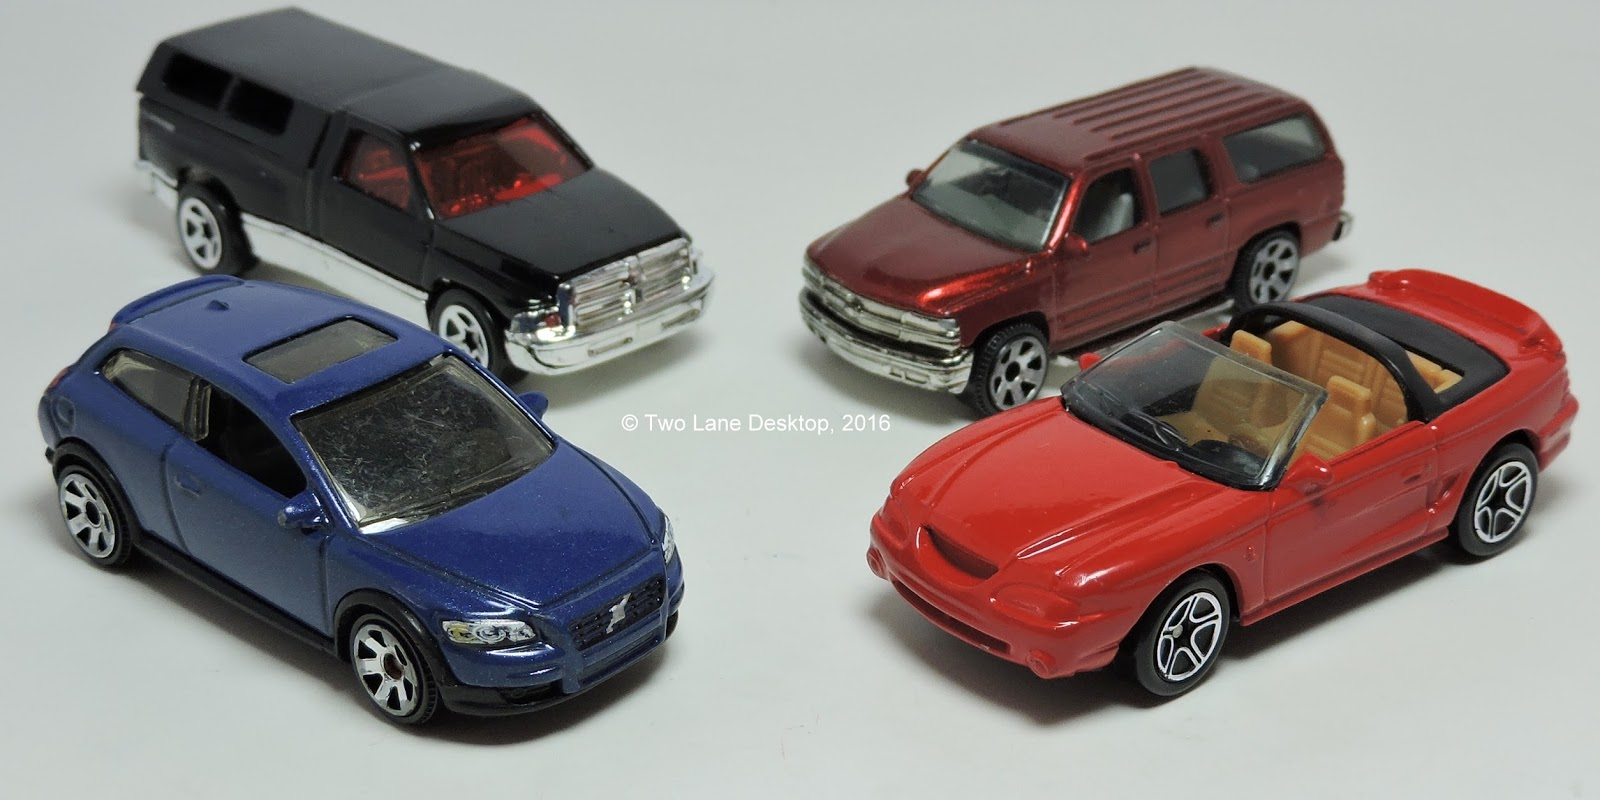 Two Lane Desktop: Quick Look: 4 Matchbox/Hot Wheels used cars